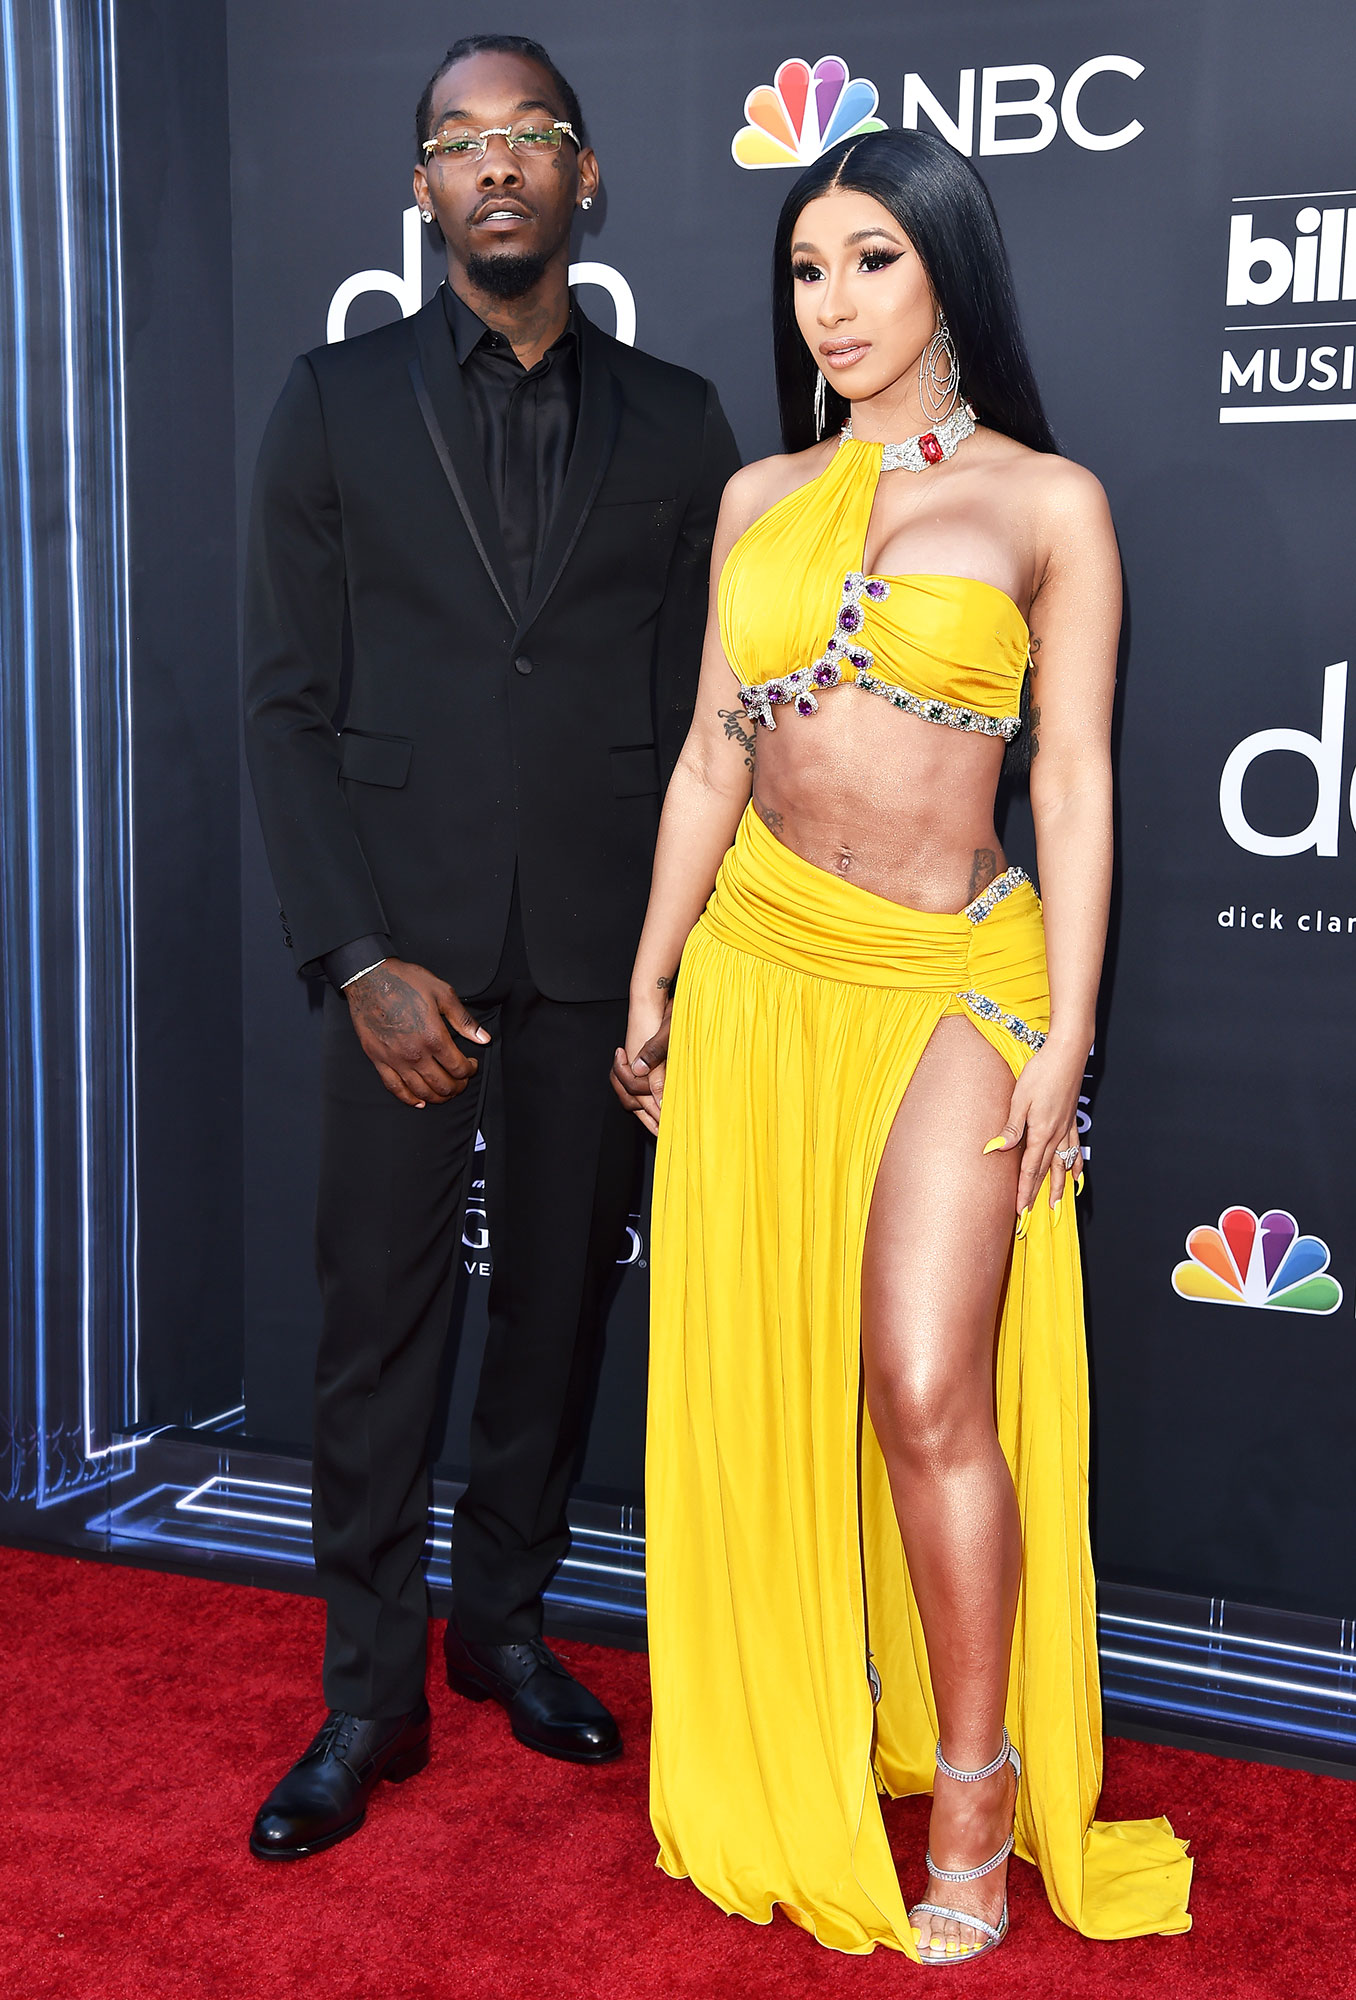 See the Hottest Couples at the BBMAs Offset and Cardi B - To complement Cardi's bold yellow Moschino crop top and skirt, Offset opted for all black.